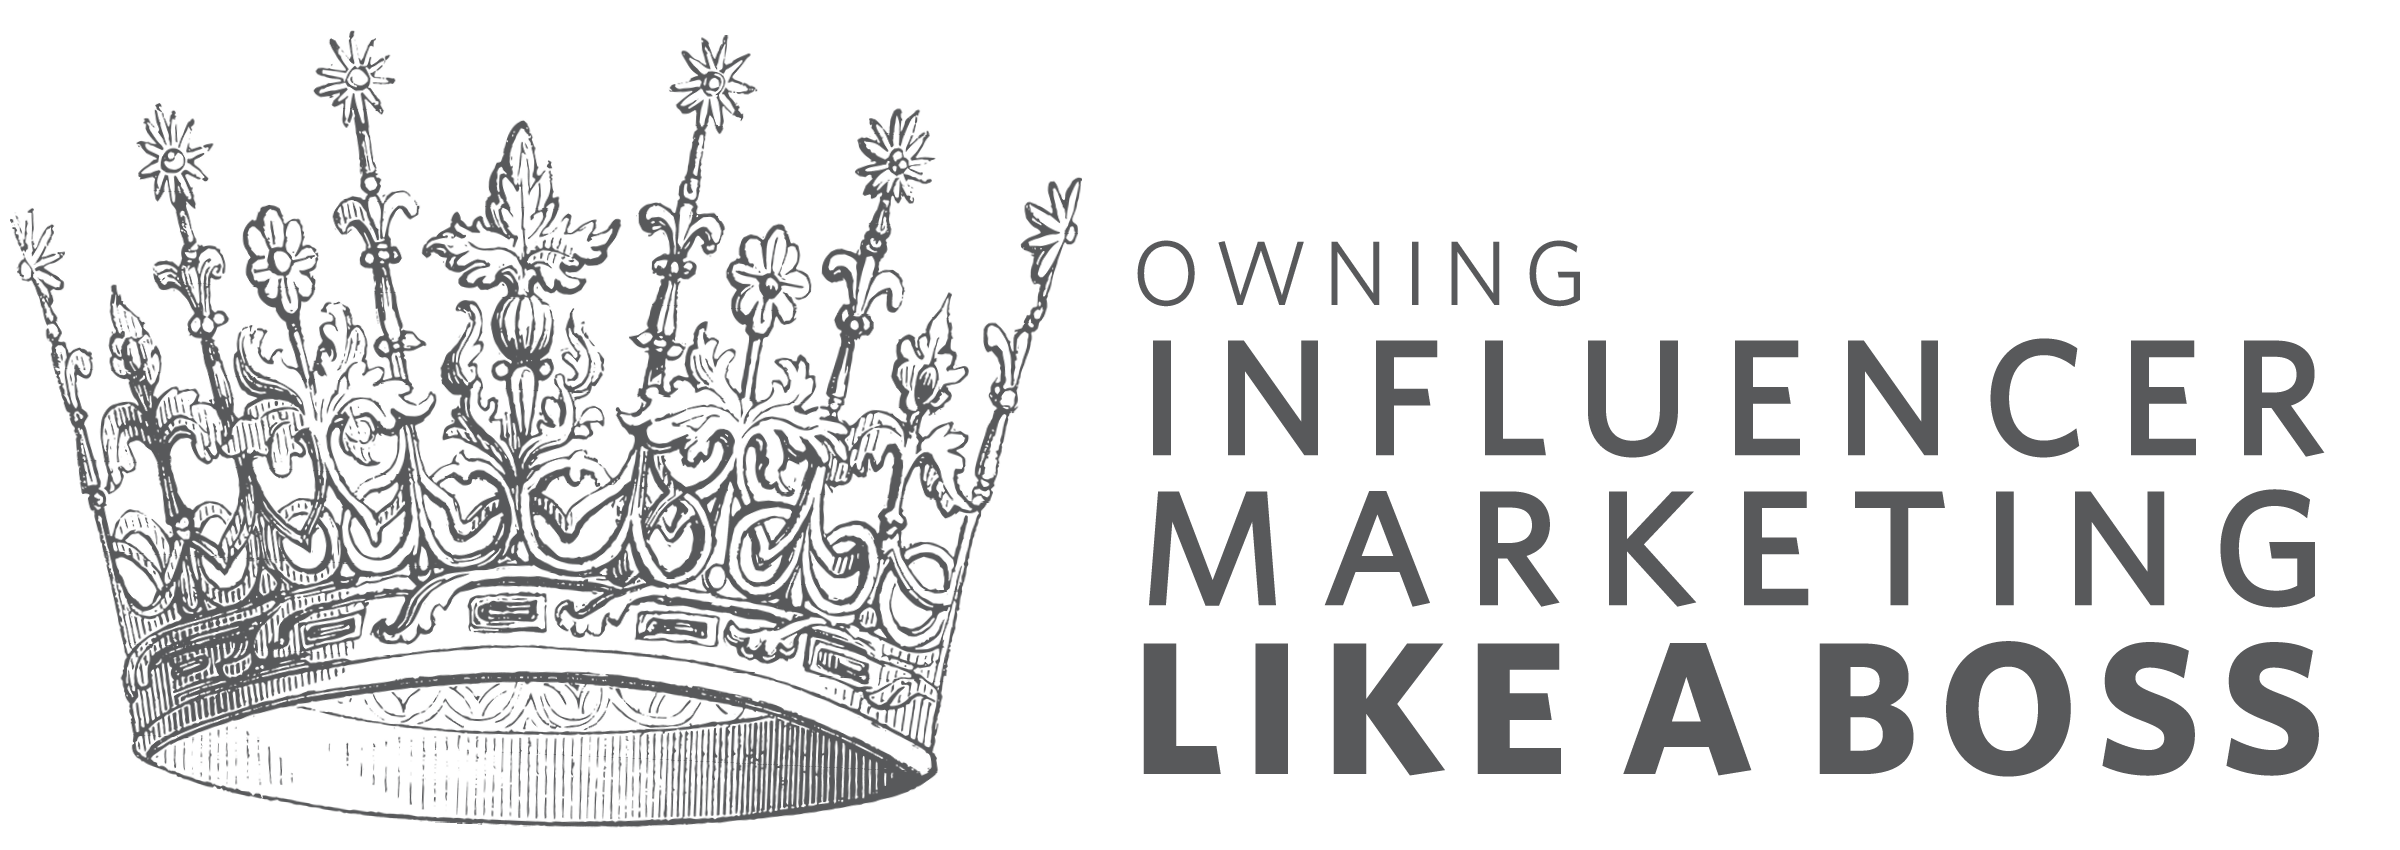 Influence Marketing 101: A Quick Guide to Owning Influencer Marketing like a Boss